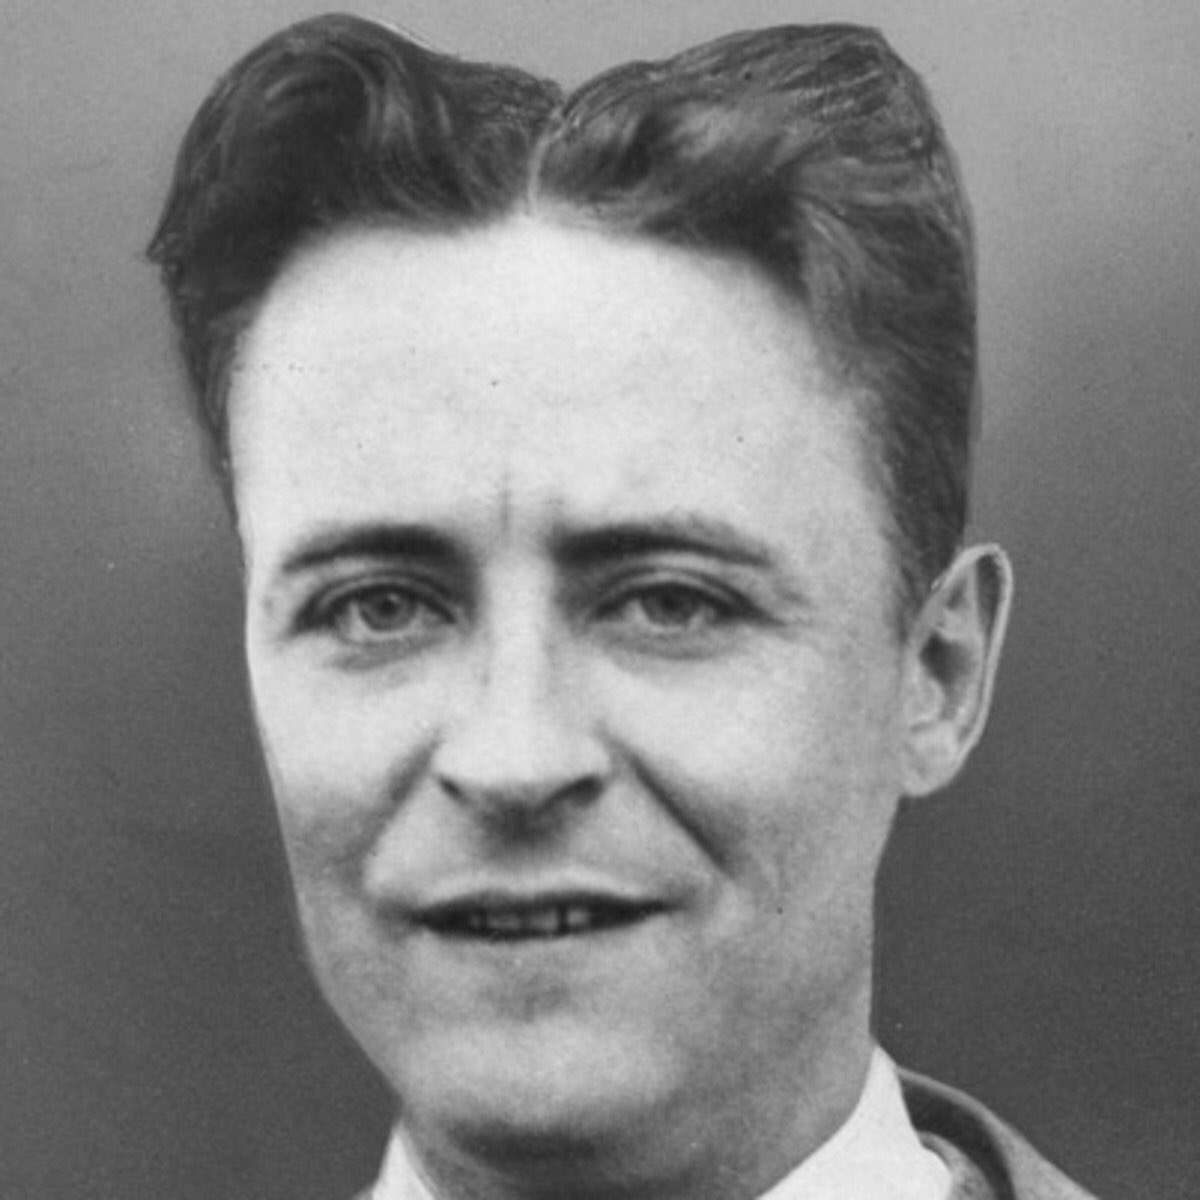 I can't believe this is what F. Scott Fitzgerald's hair looked like. No one ever talks about it.